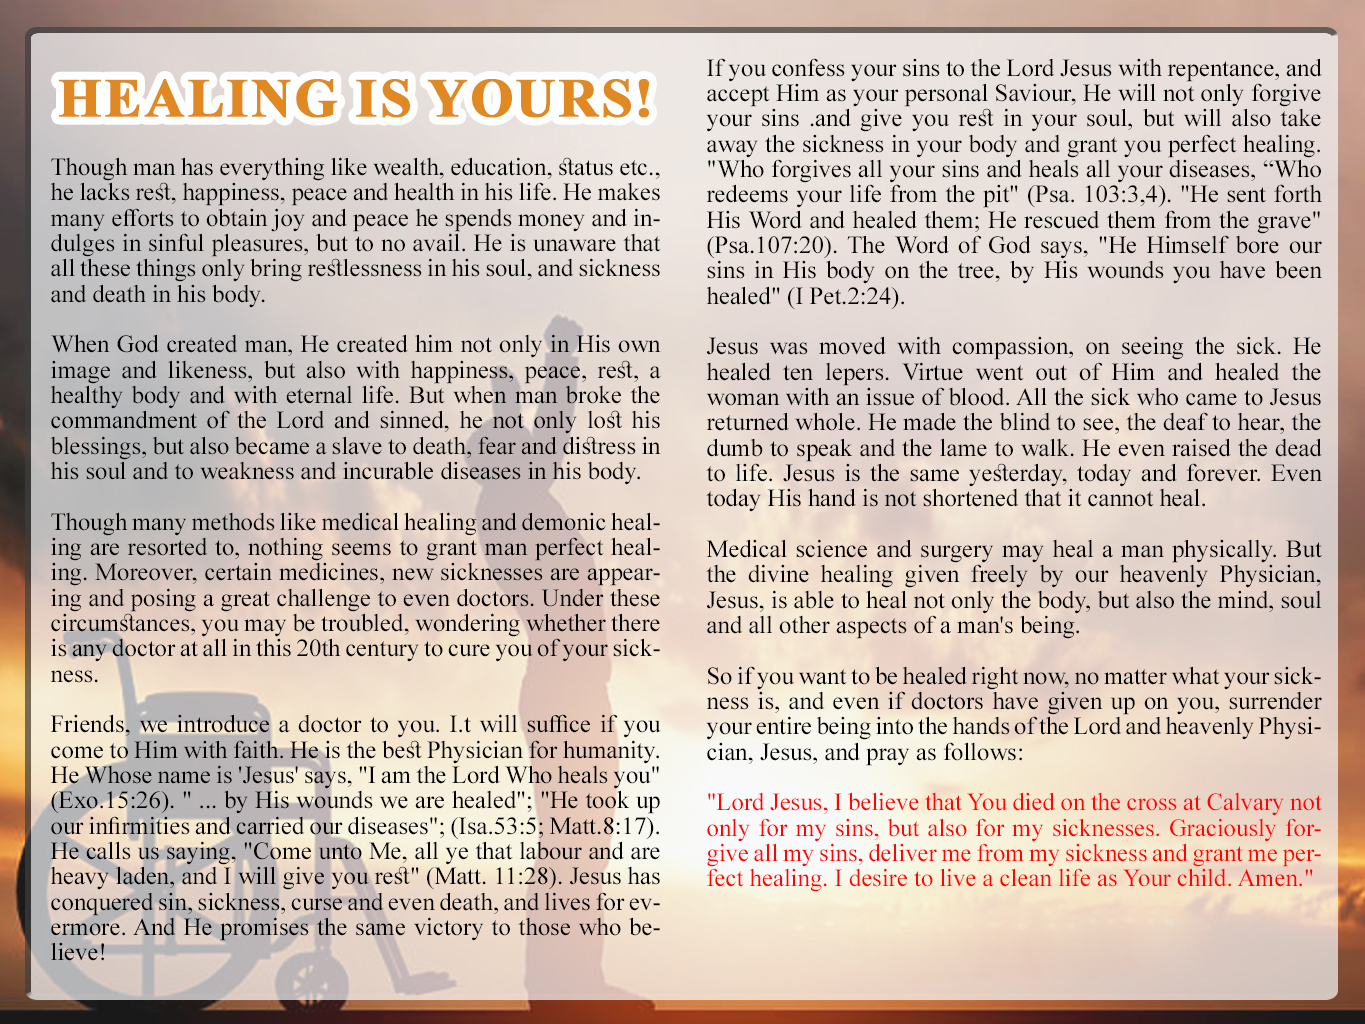 Healing-is-yours_English1